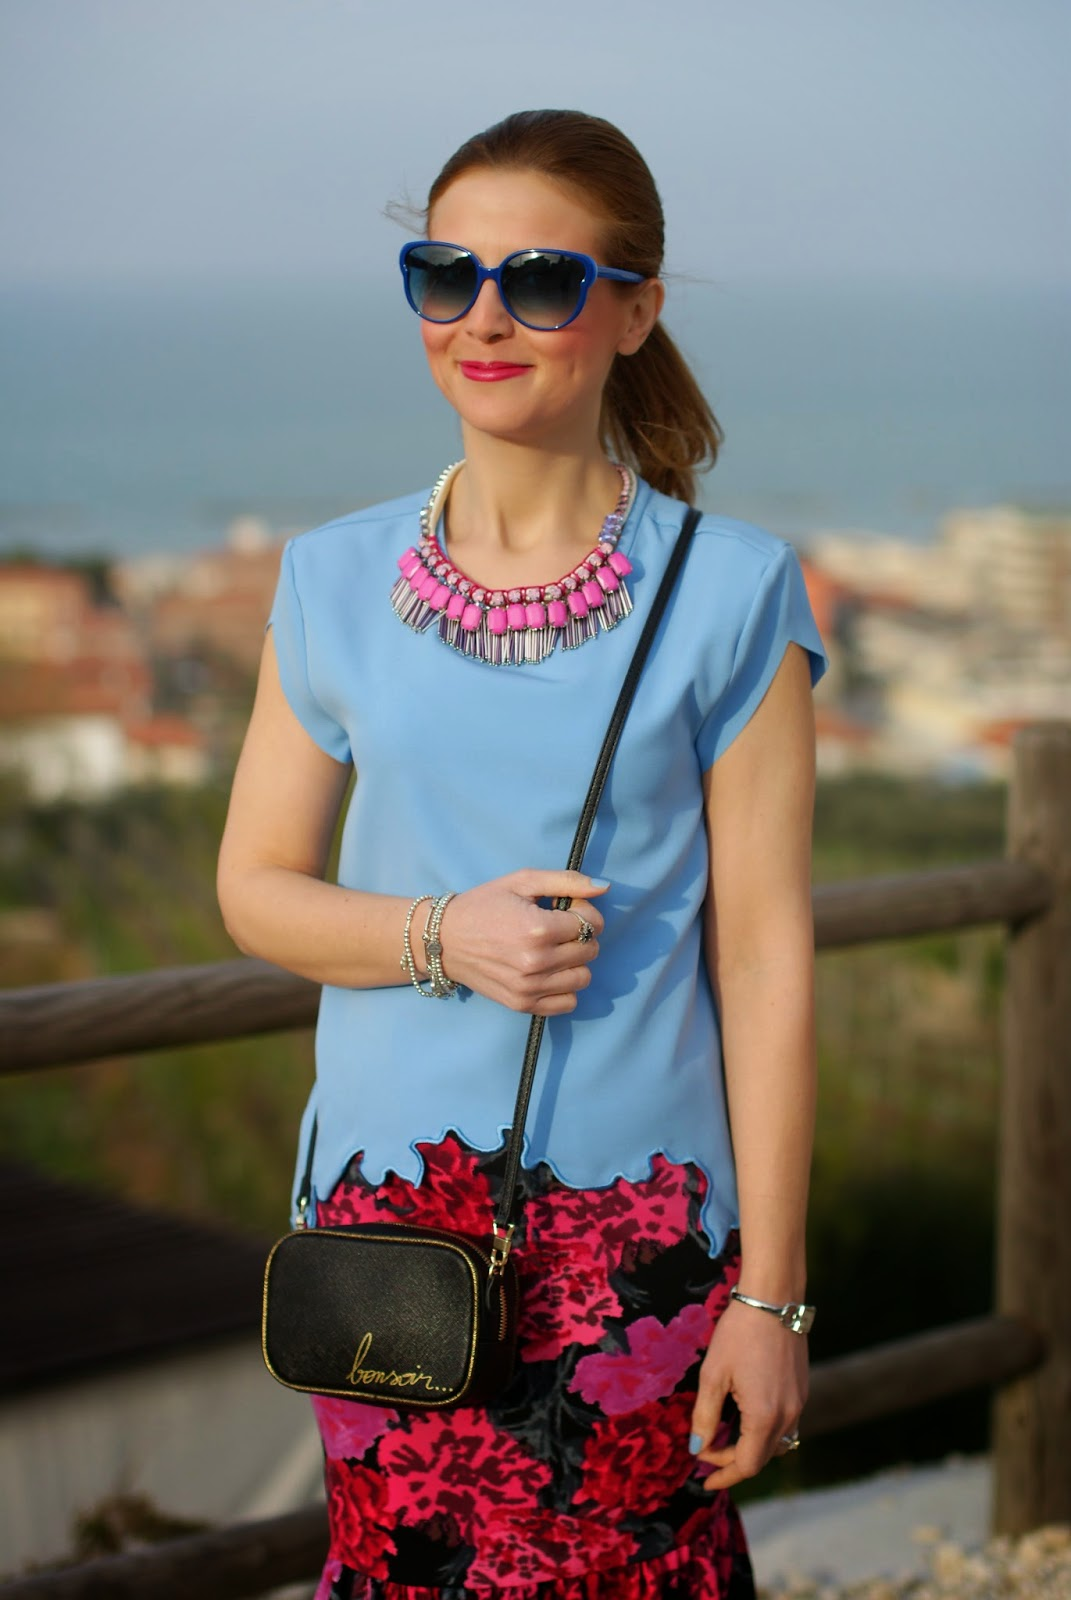 Zara azure blouse, Sodini bijoux pink necklace, zara bonsoir bag, dimples with smile, Fashion and Cookies, fashion blogger